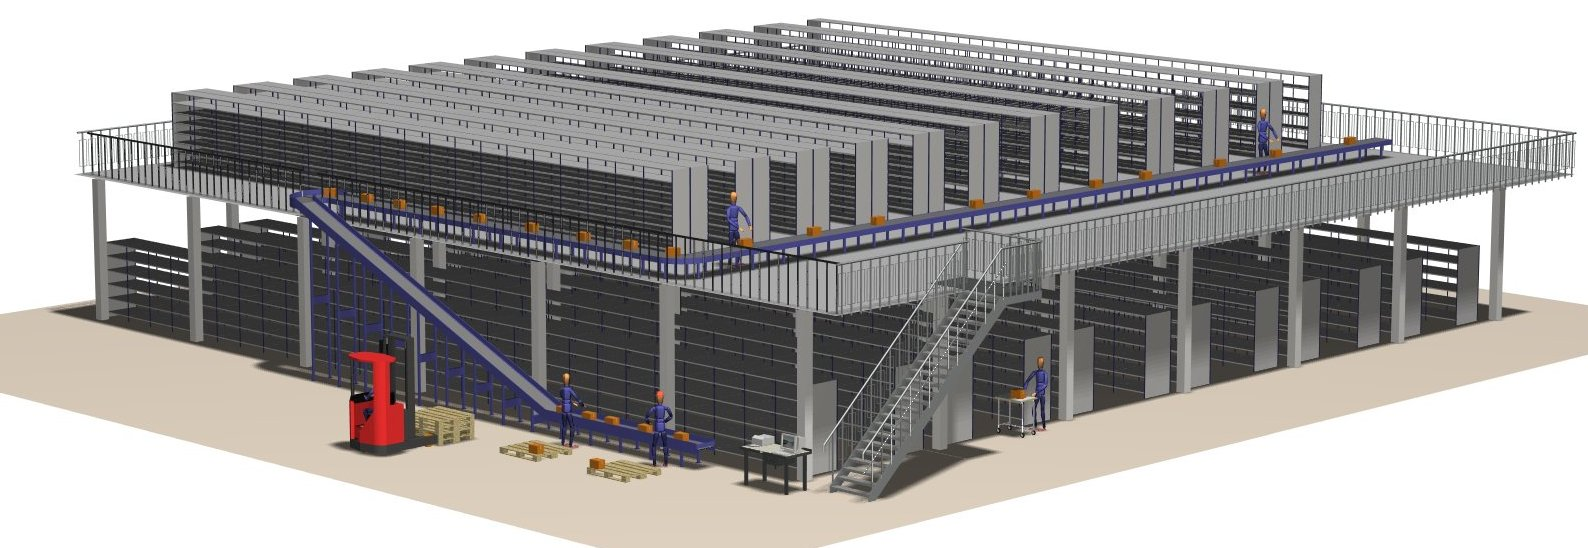 Layout design services for warehouse facilities equipment for Warehouse plans designs